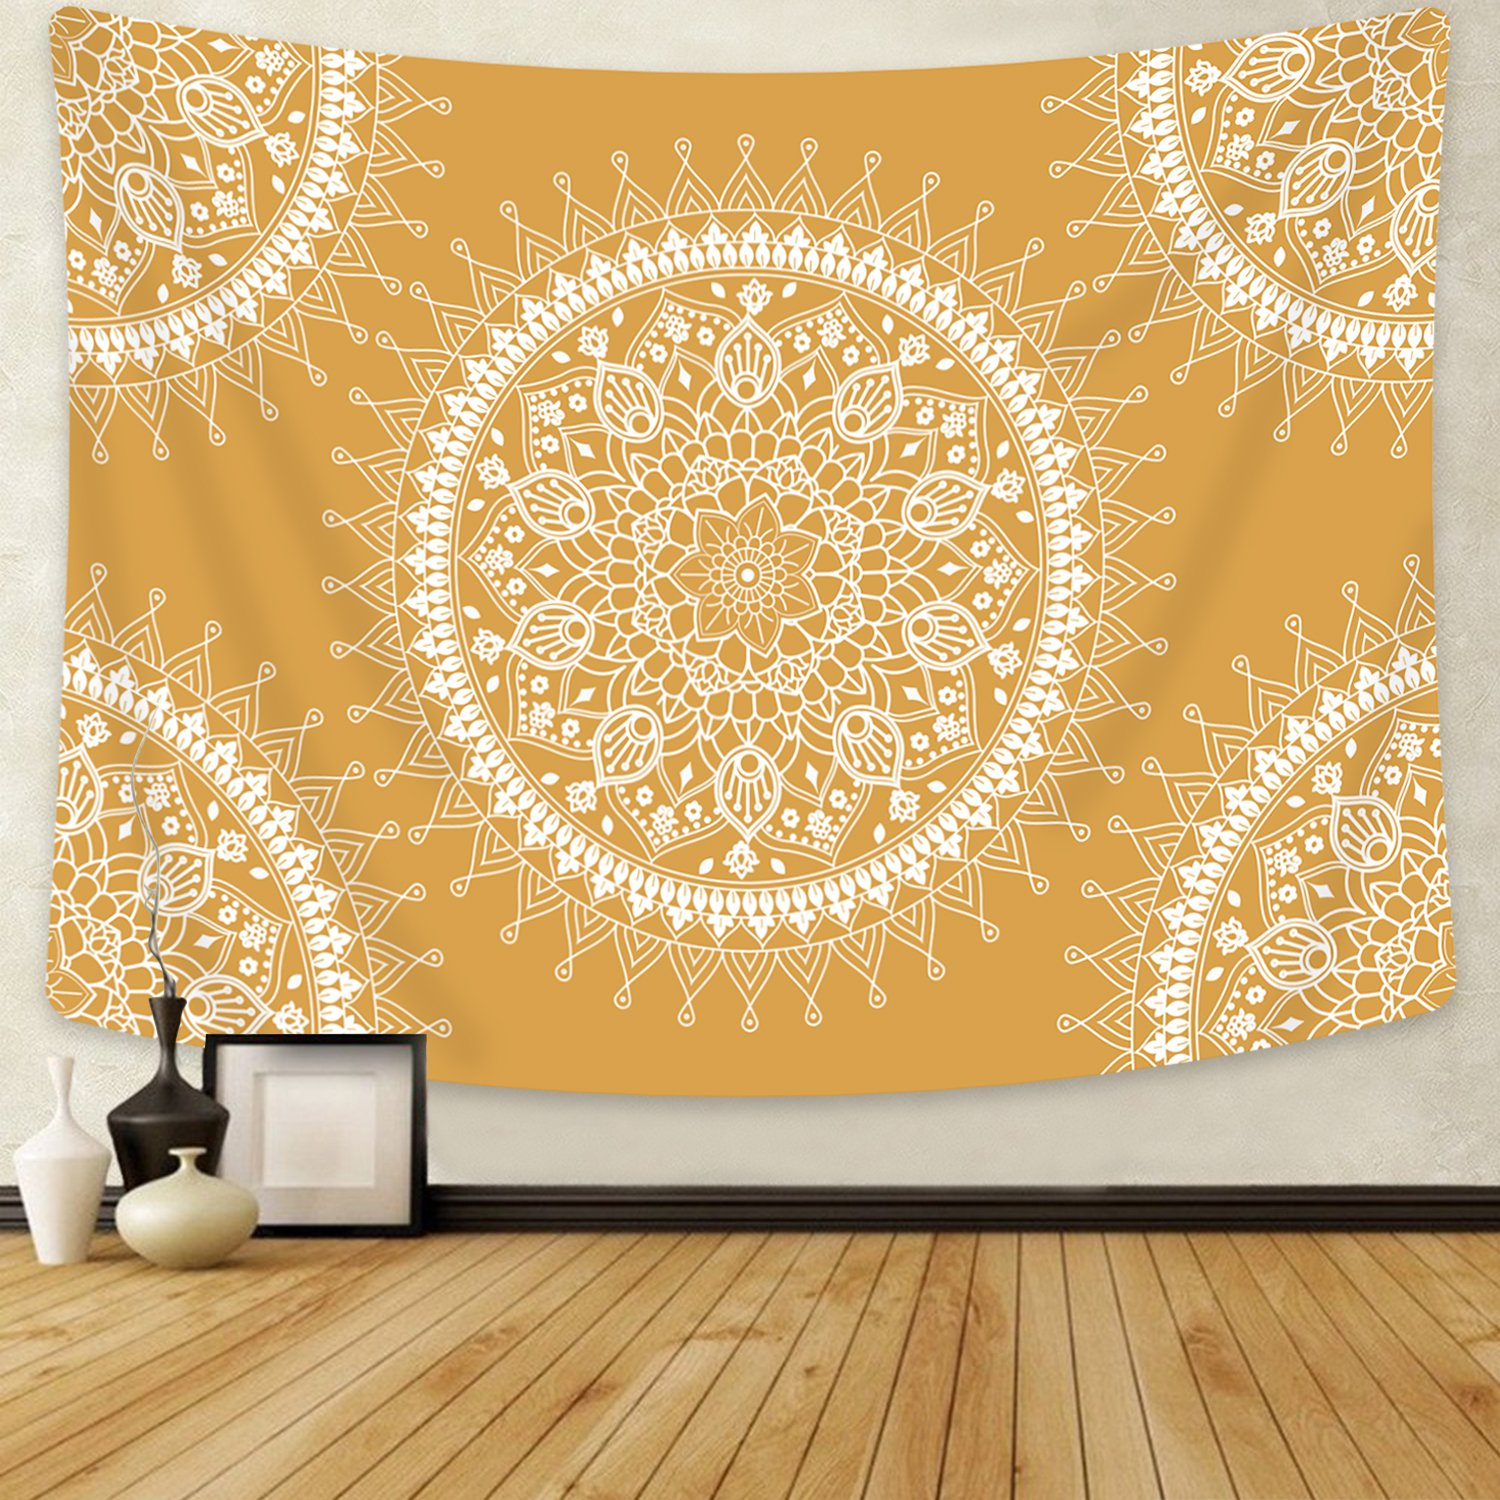 Amazon.com: Tapestry Mandala Hippie Bohemian Tapestries Wall Hanging ...